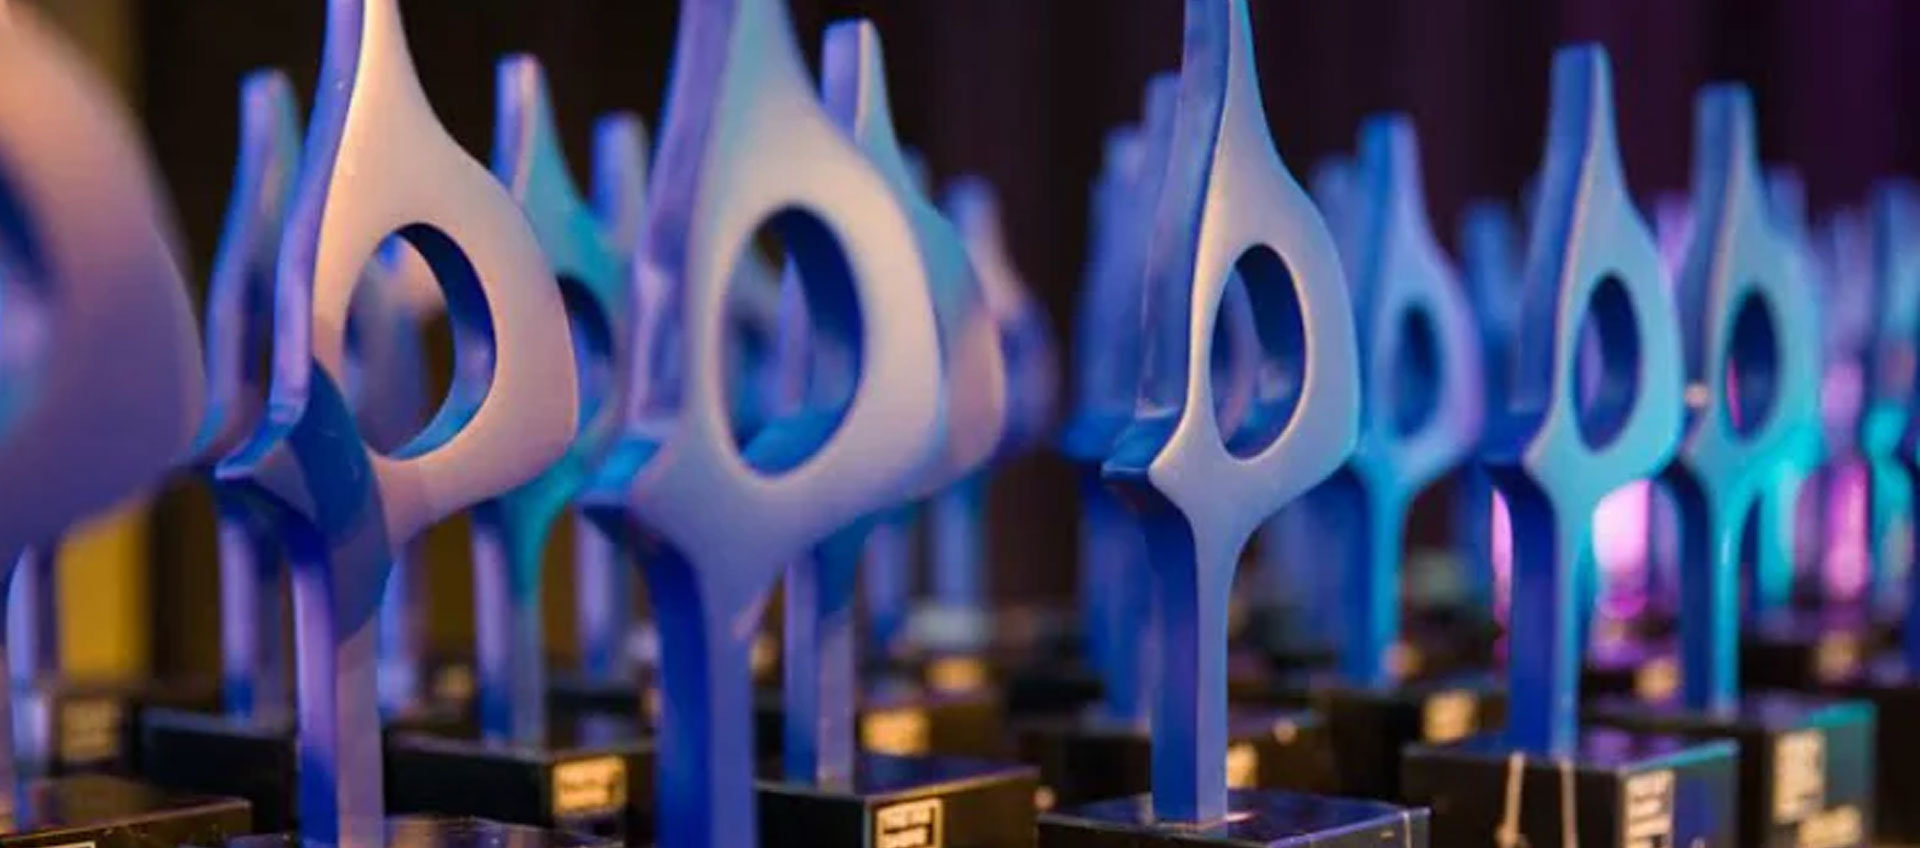 Cannings Purple is a finalist for a global SABRE Award for the top corporate/financial consultancy.